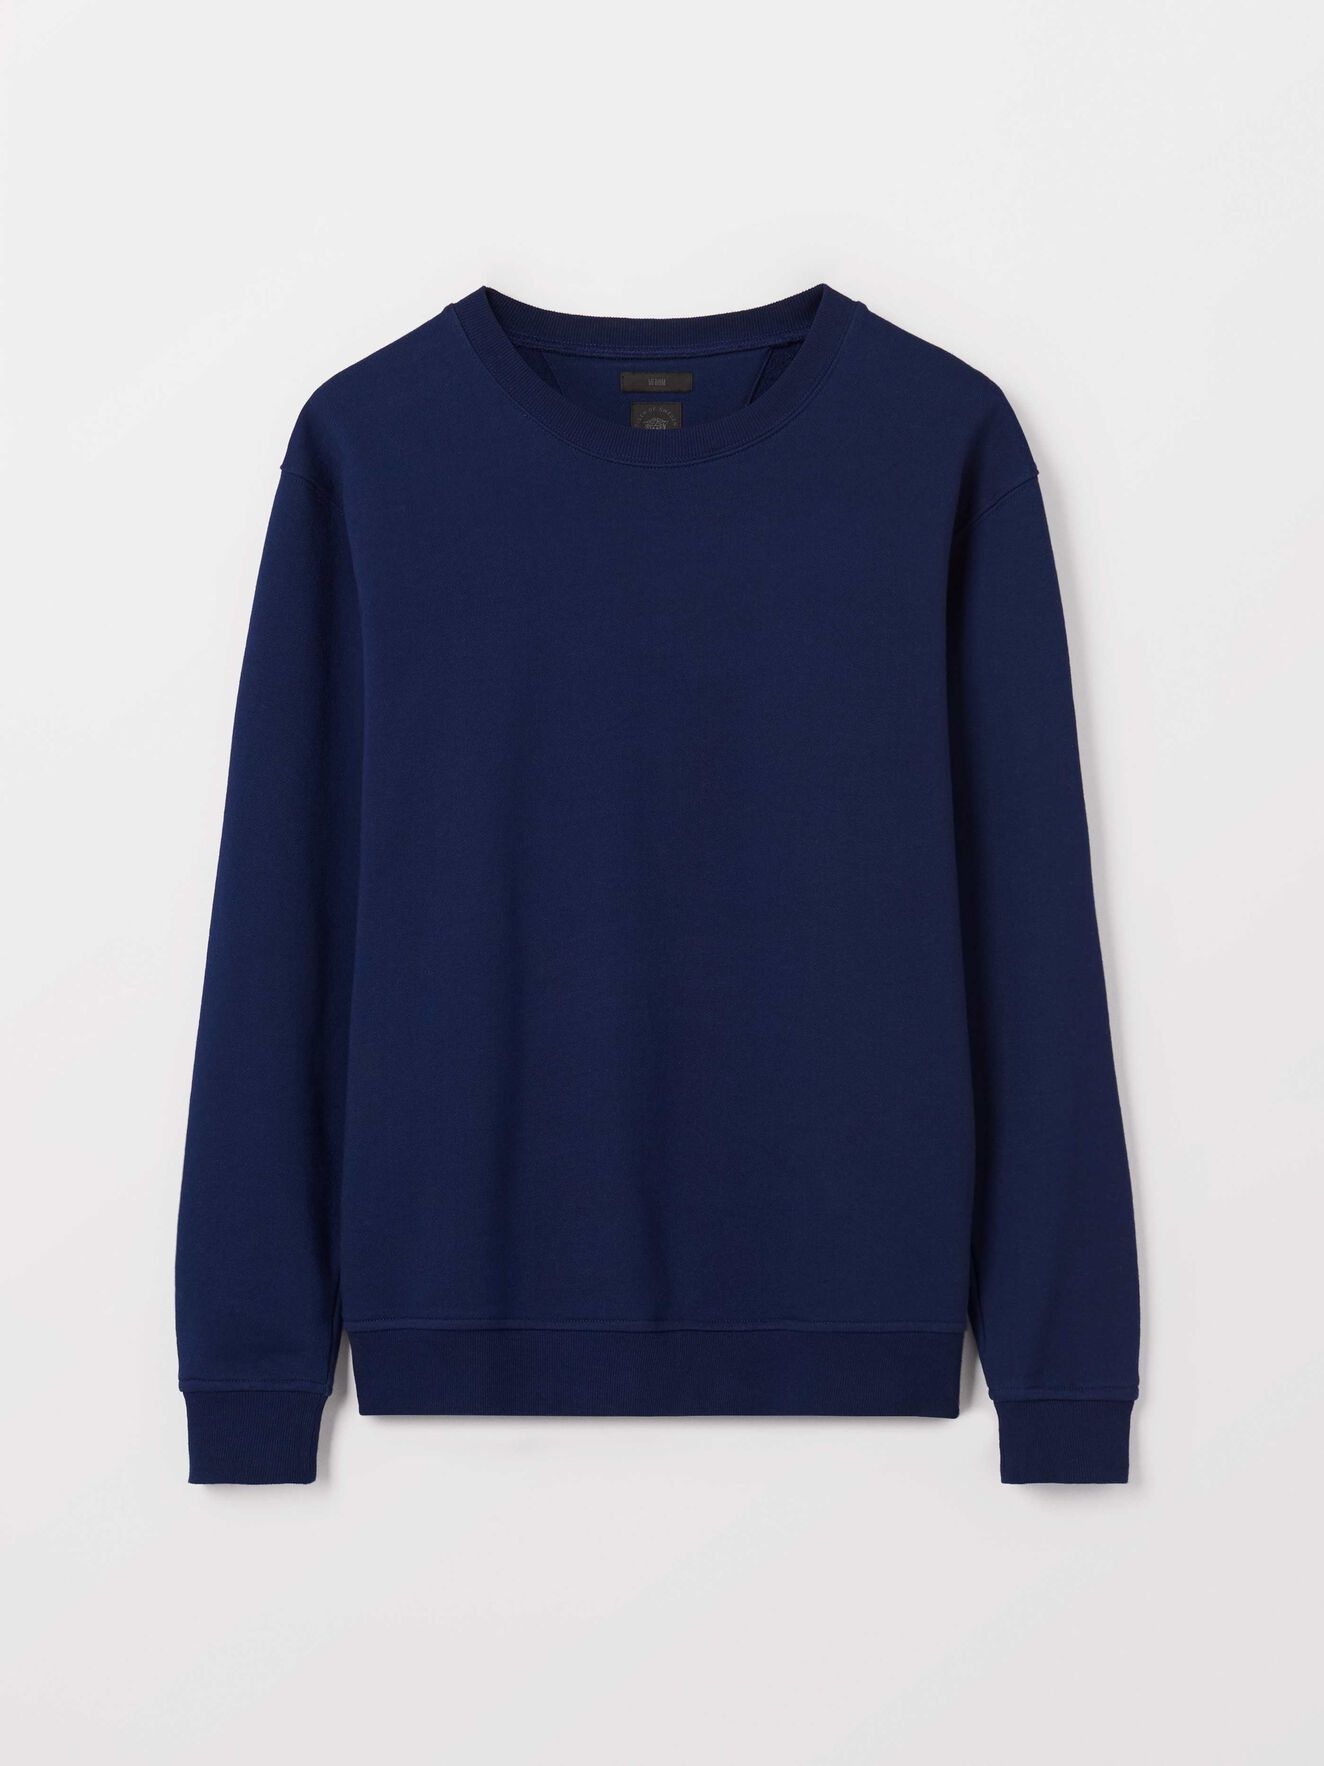 Tana Sweatshirt in Maritime Blue from Tiger of Sweden